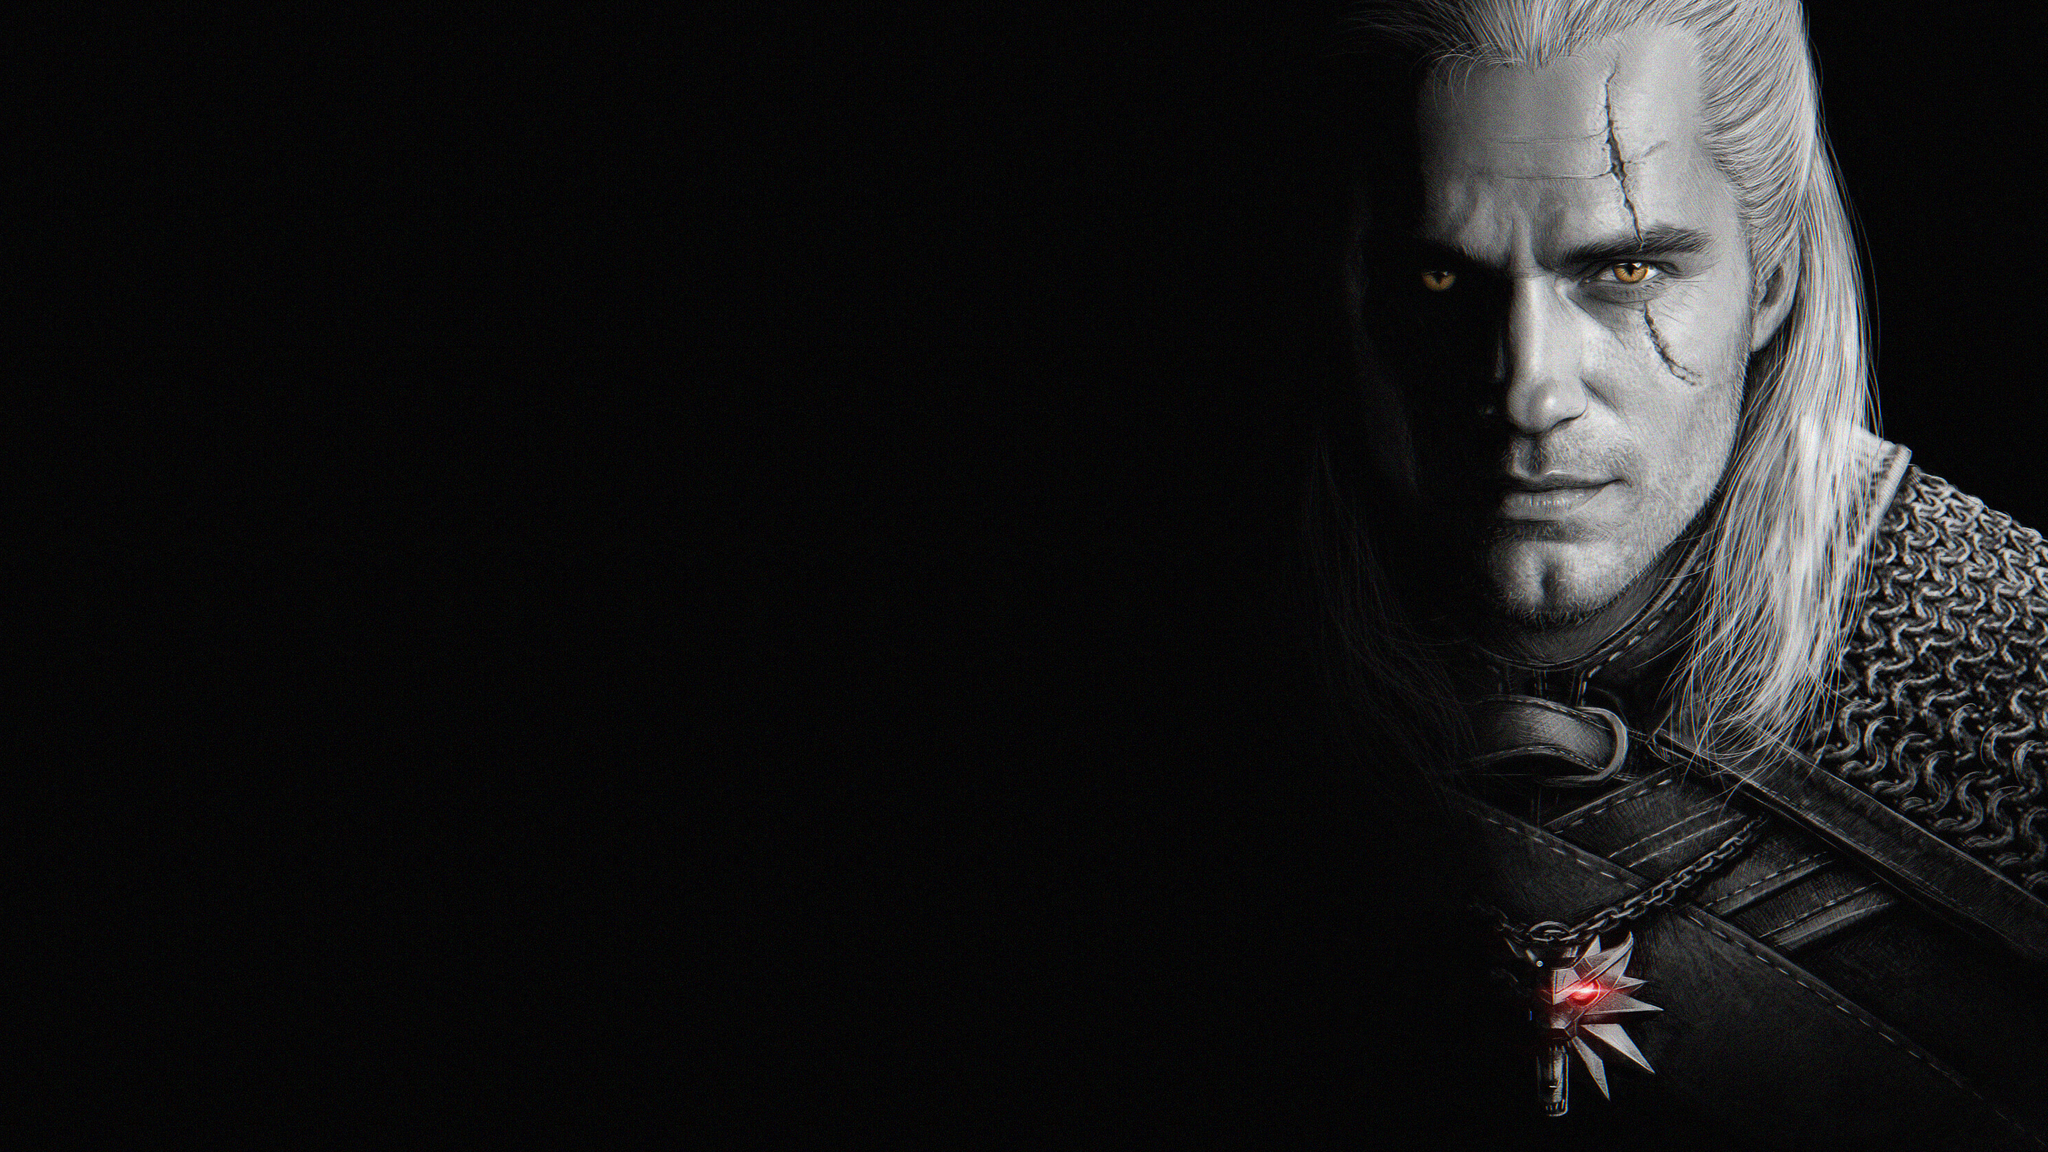 the-witcher-henry-cavill-4k-new-8s.jpg